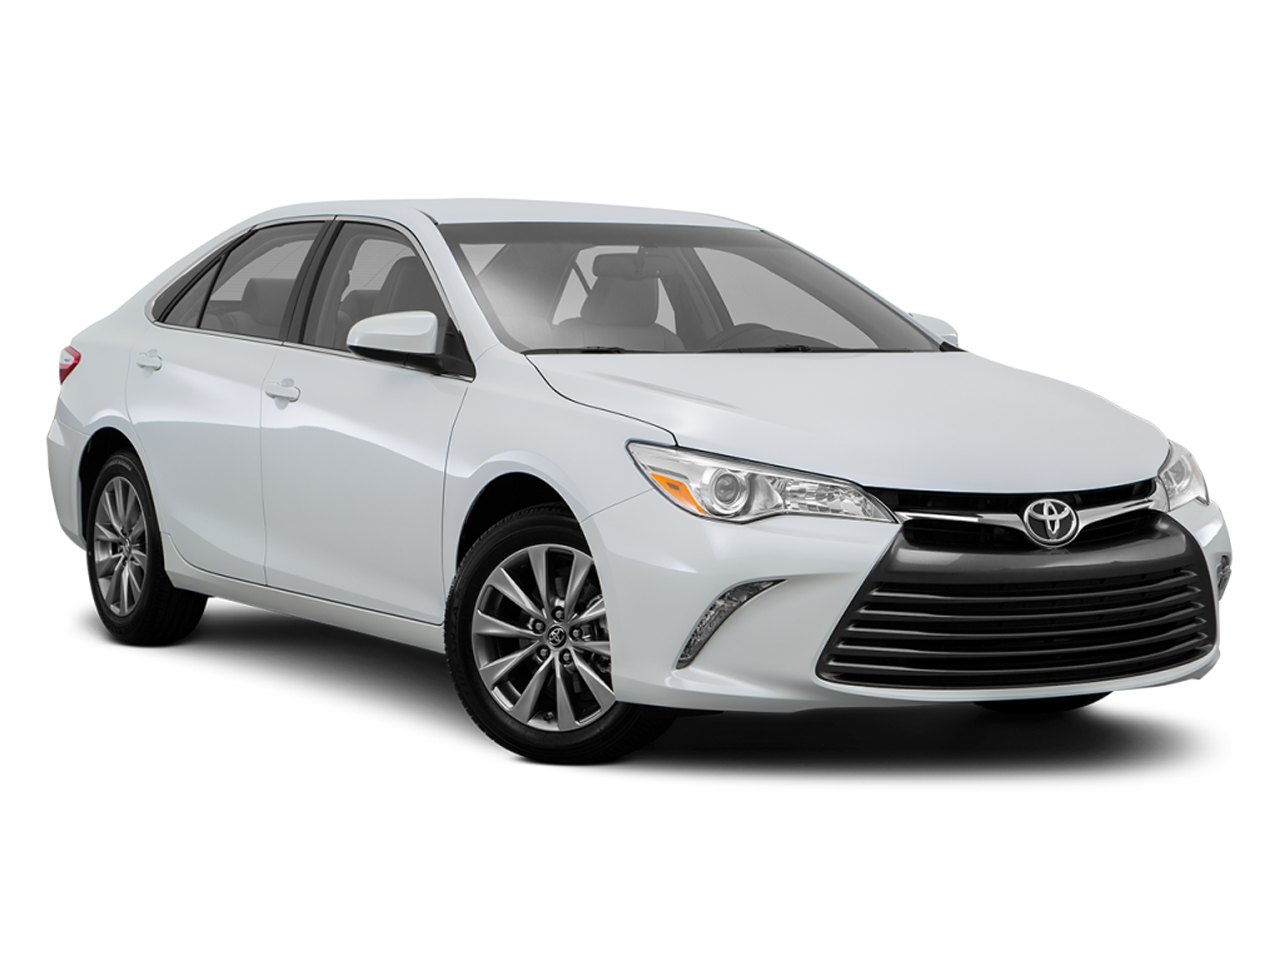 compare the 2016 toyota camry vs 2016 hyundai sonata romano toyota. Black Bedroom Furniture Sets. Home Design Ideas